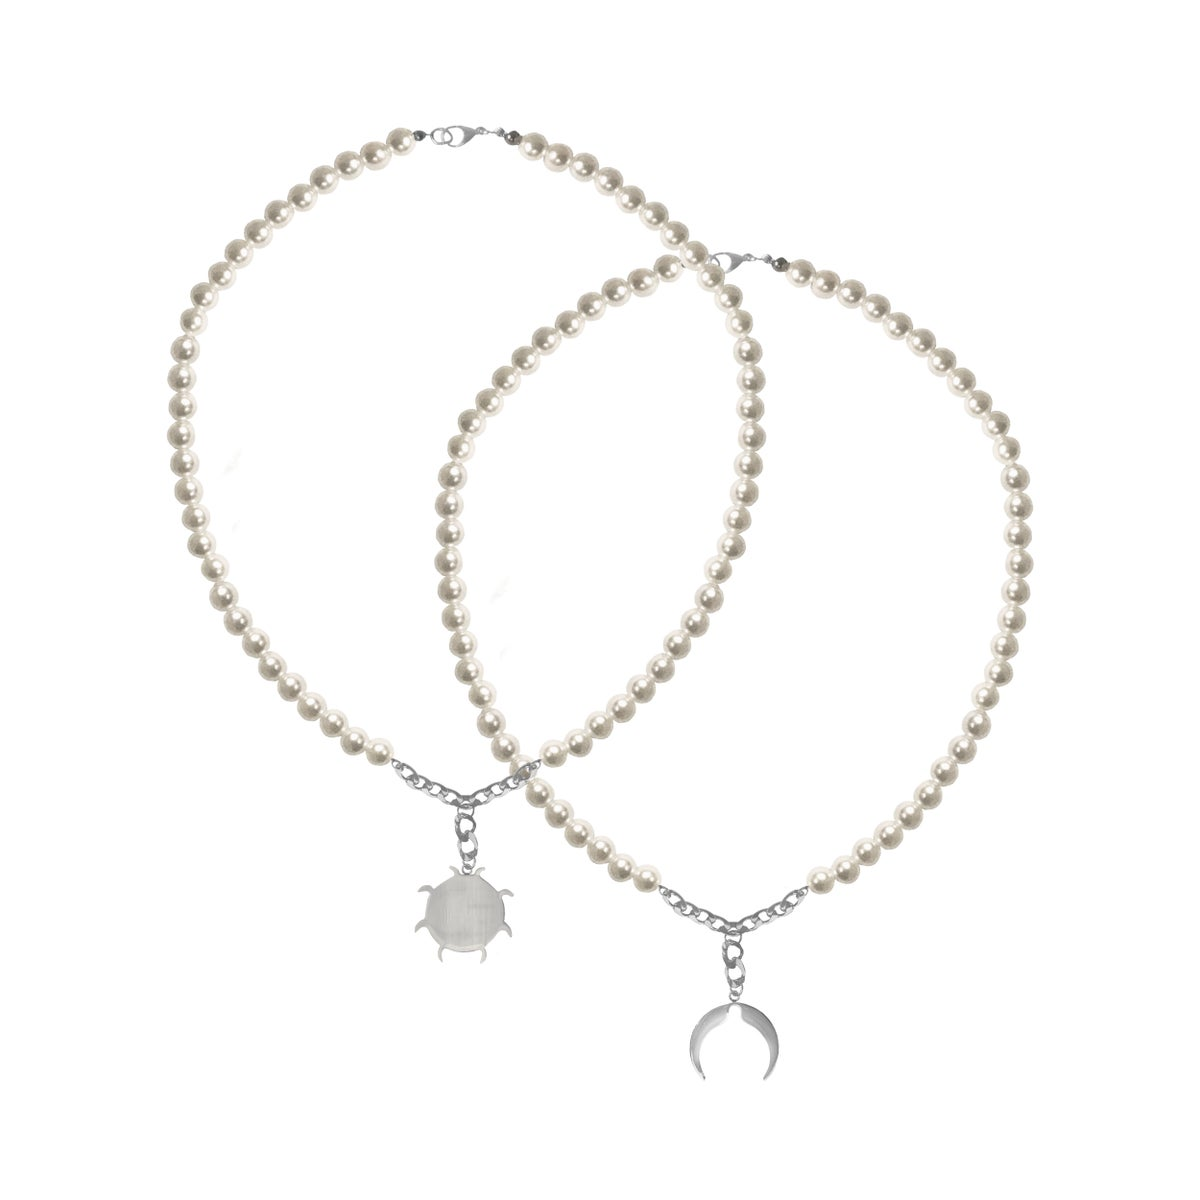 Image of SALES: PACK OF 2: PEARL MOON AND SUN LOGO NECKLACES (unisex)